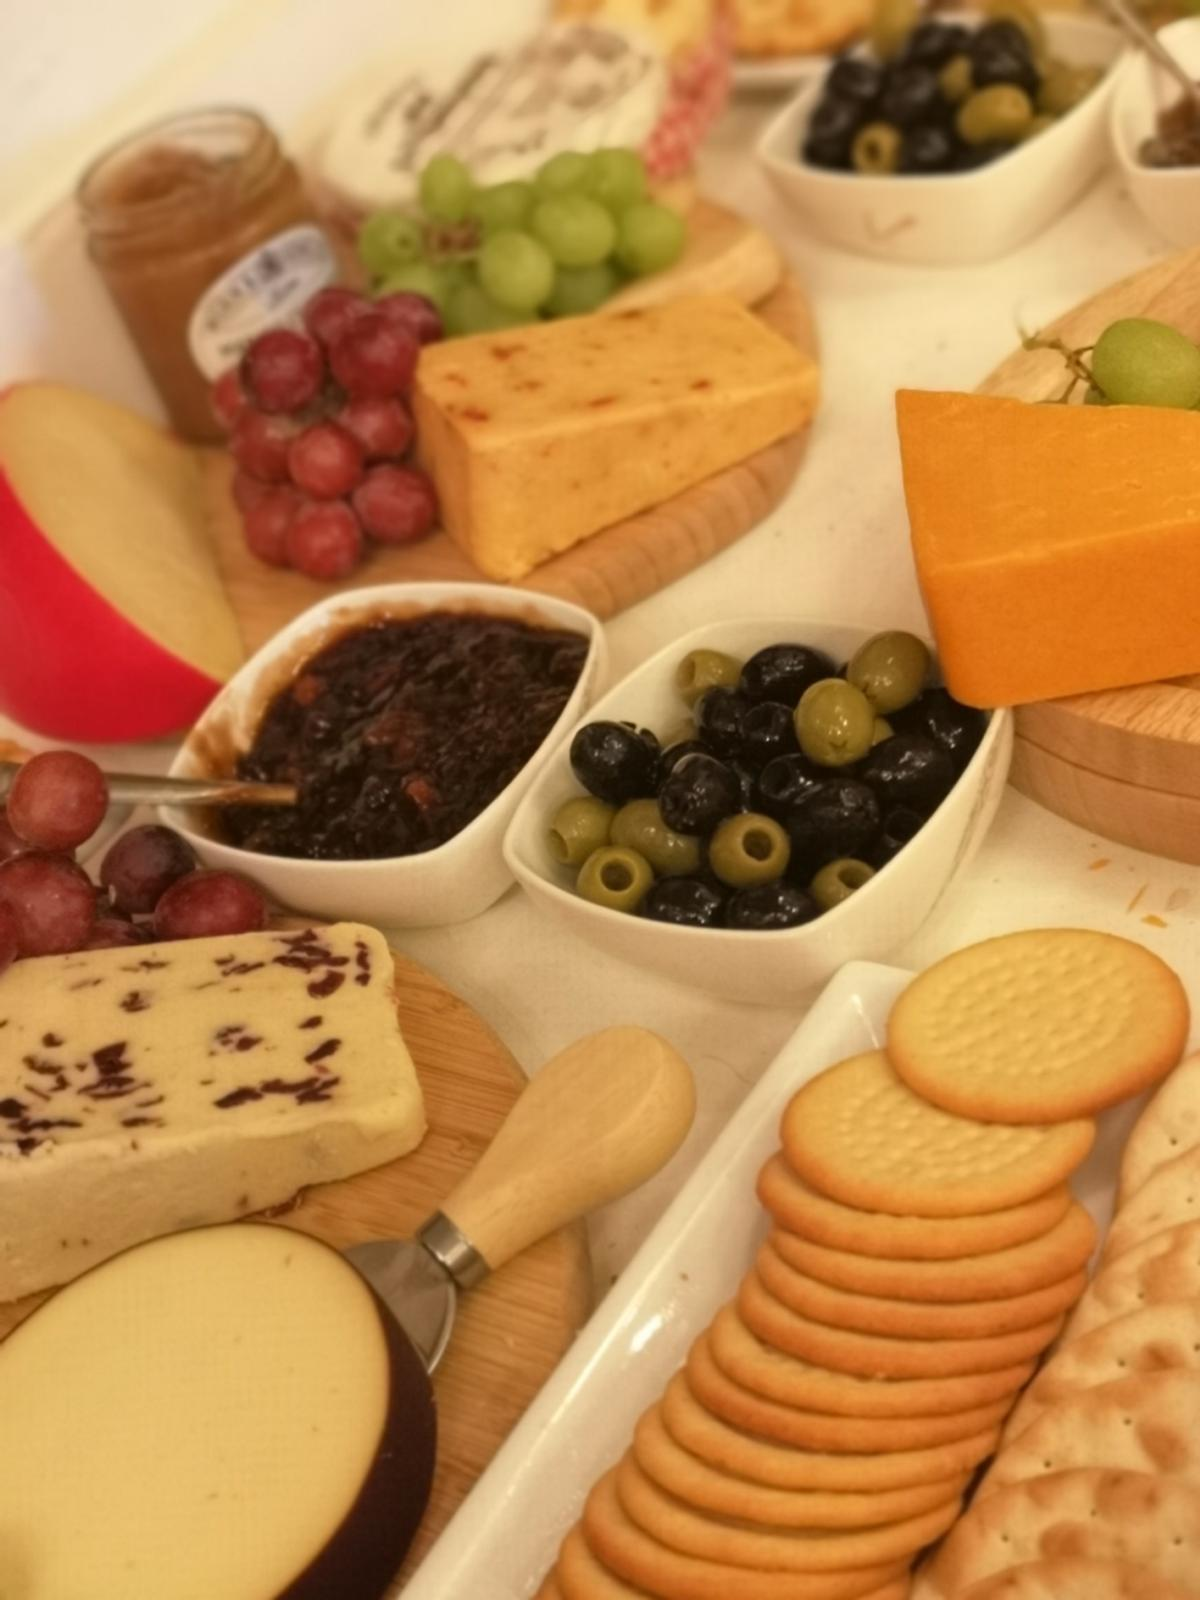 ❤️ Those Finishing Touches ❤️  Wedding and events stylist  Fully stocked cheese cart for hire for 100 guests.... Comes with 10 varieties of cheese, crackers, boards, knives, grapes, chutneys and olives  Price includes delivery within 15 miles of DE55  Delivered 30 minutes prior to evening reception if required